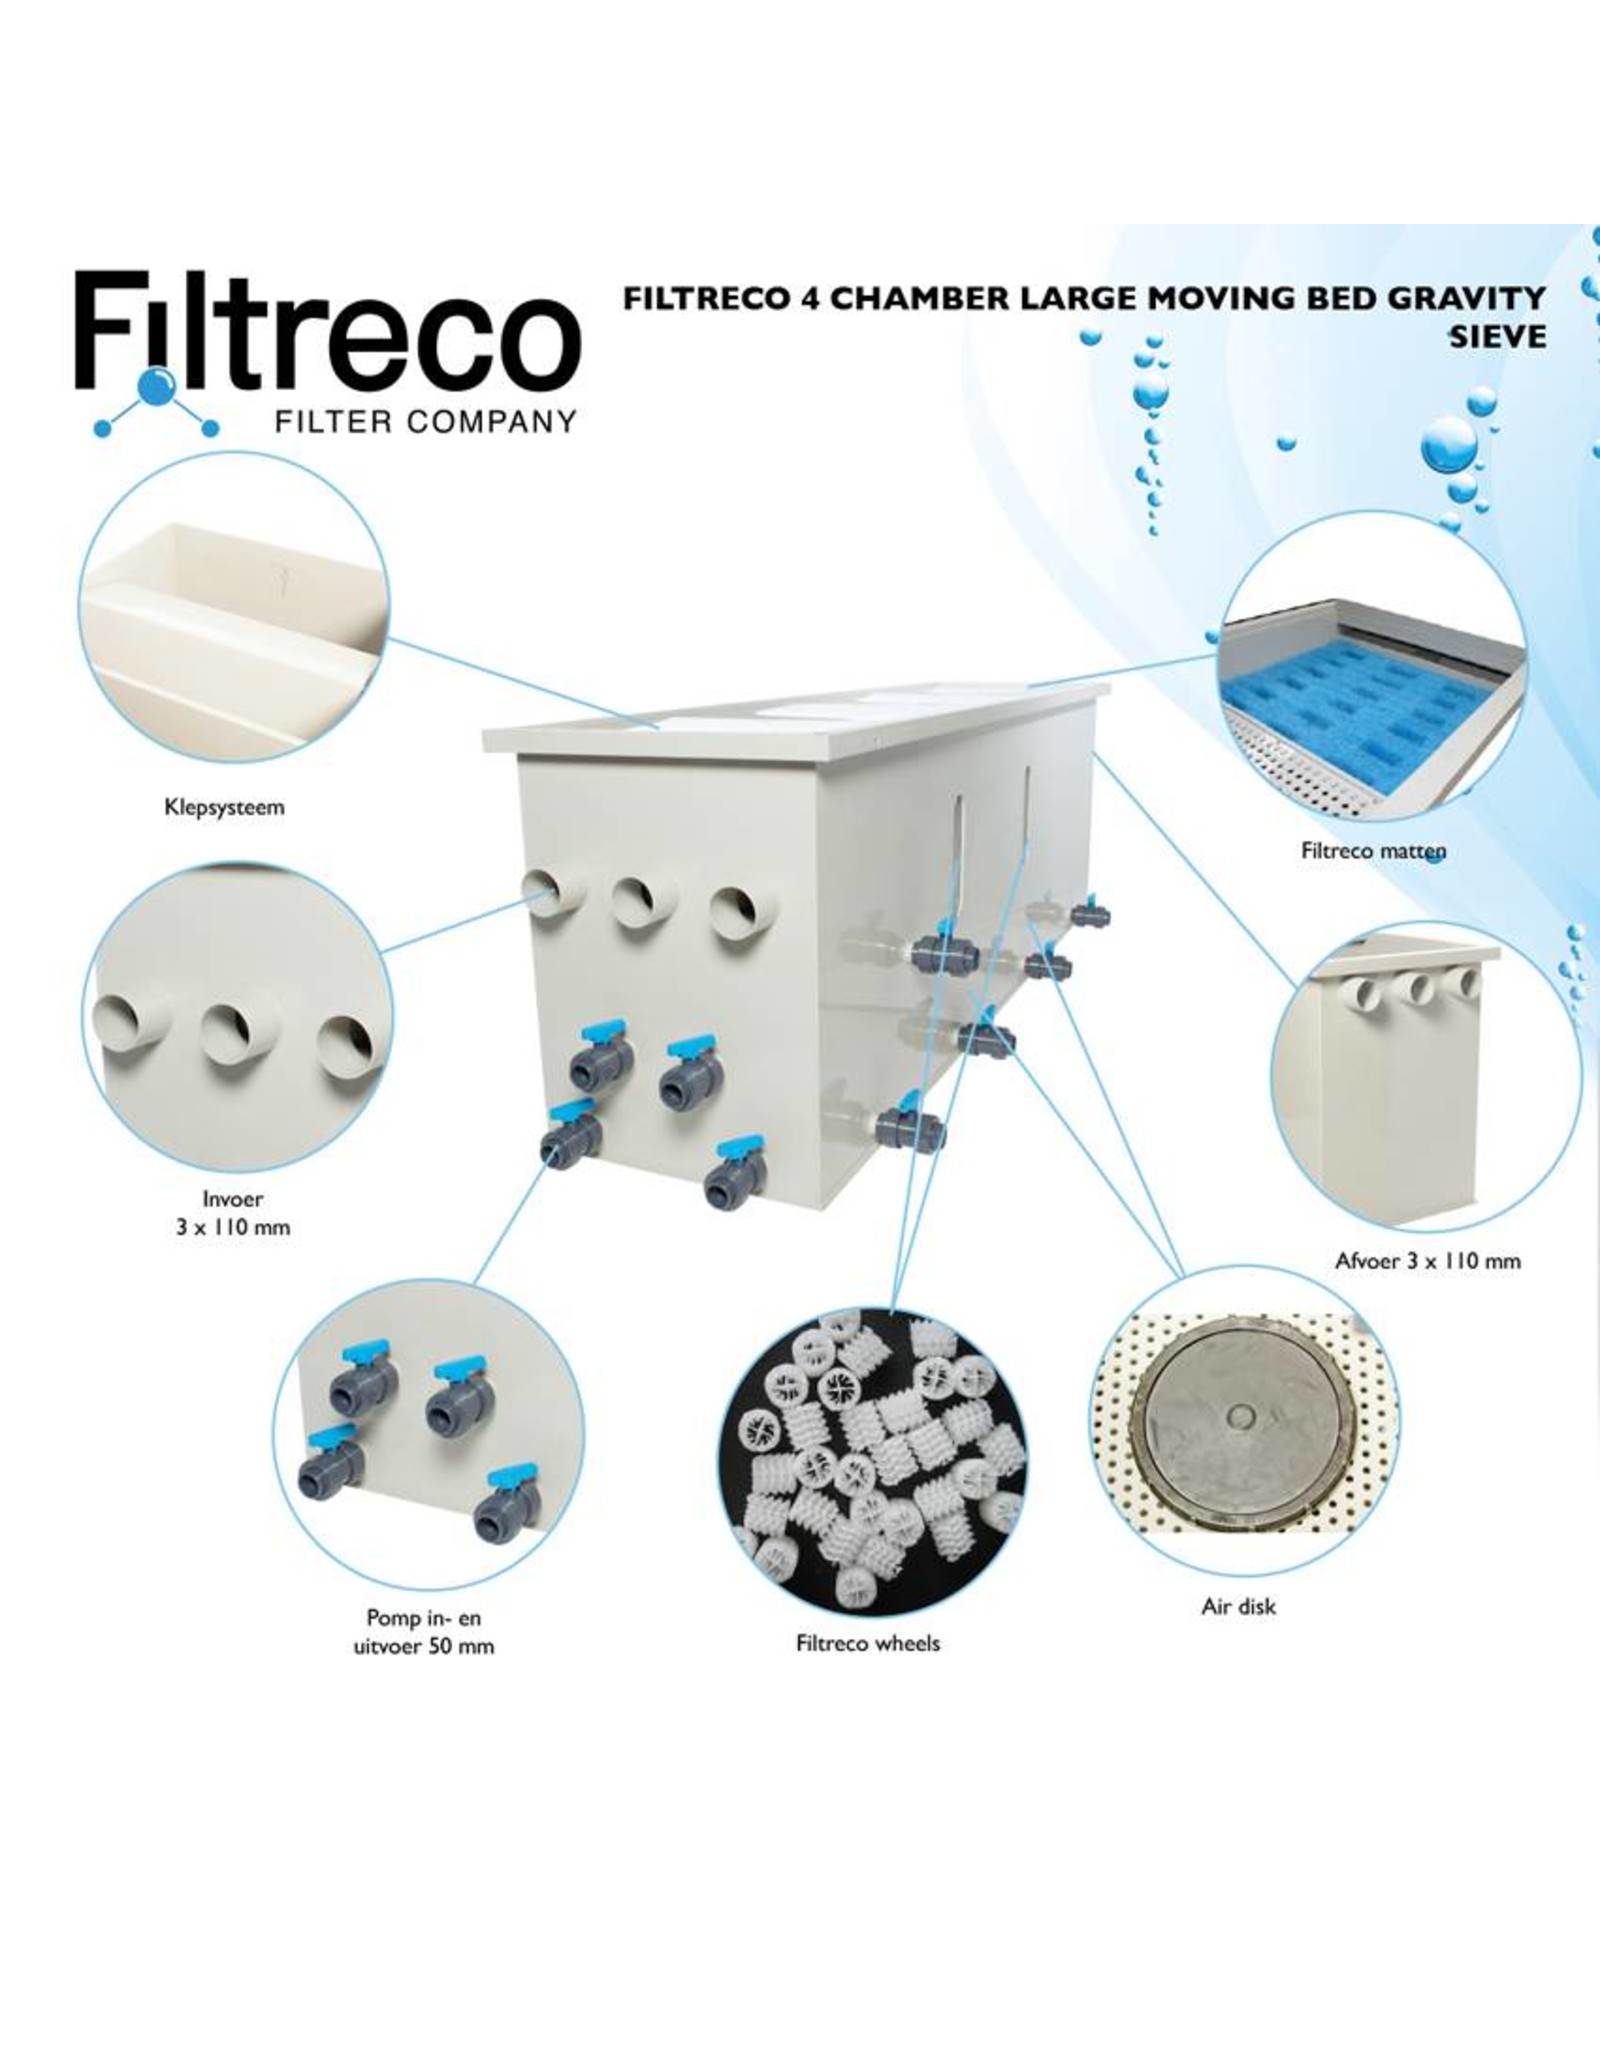 Filtreco Filtreco 4 Chamber Moving Bed Gravity Sieve Large